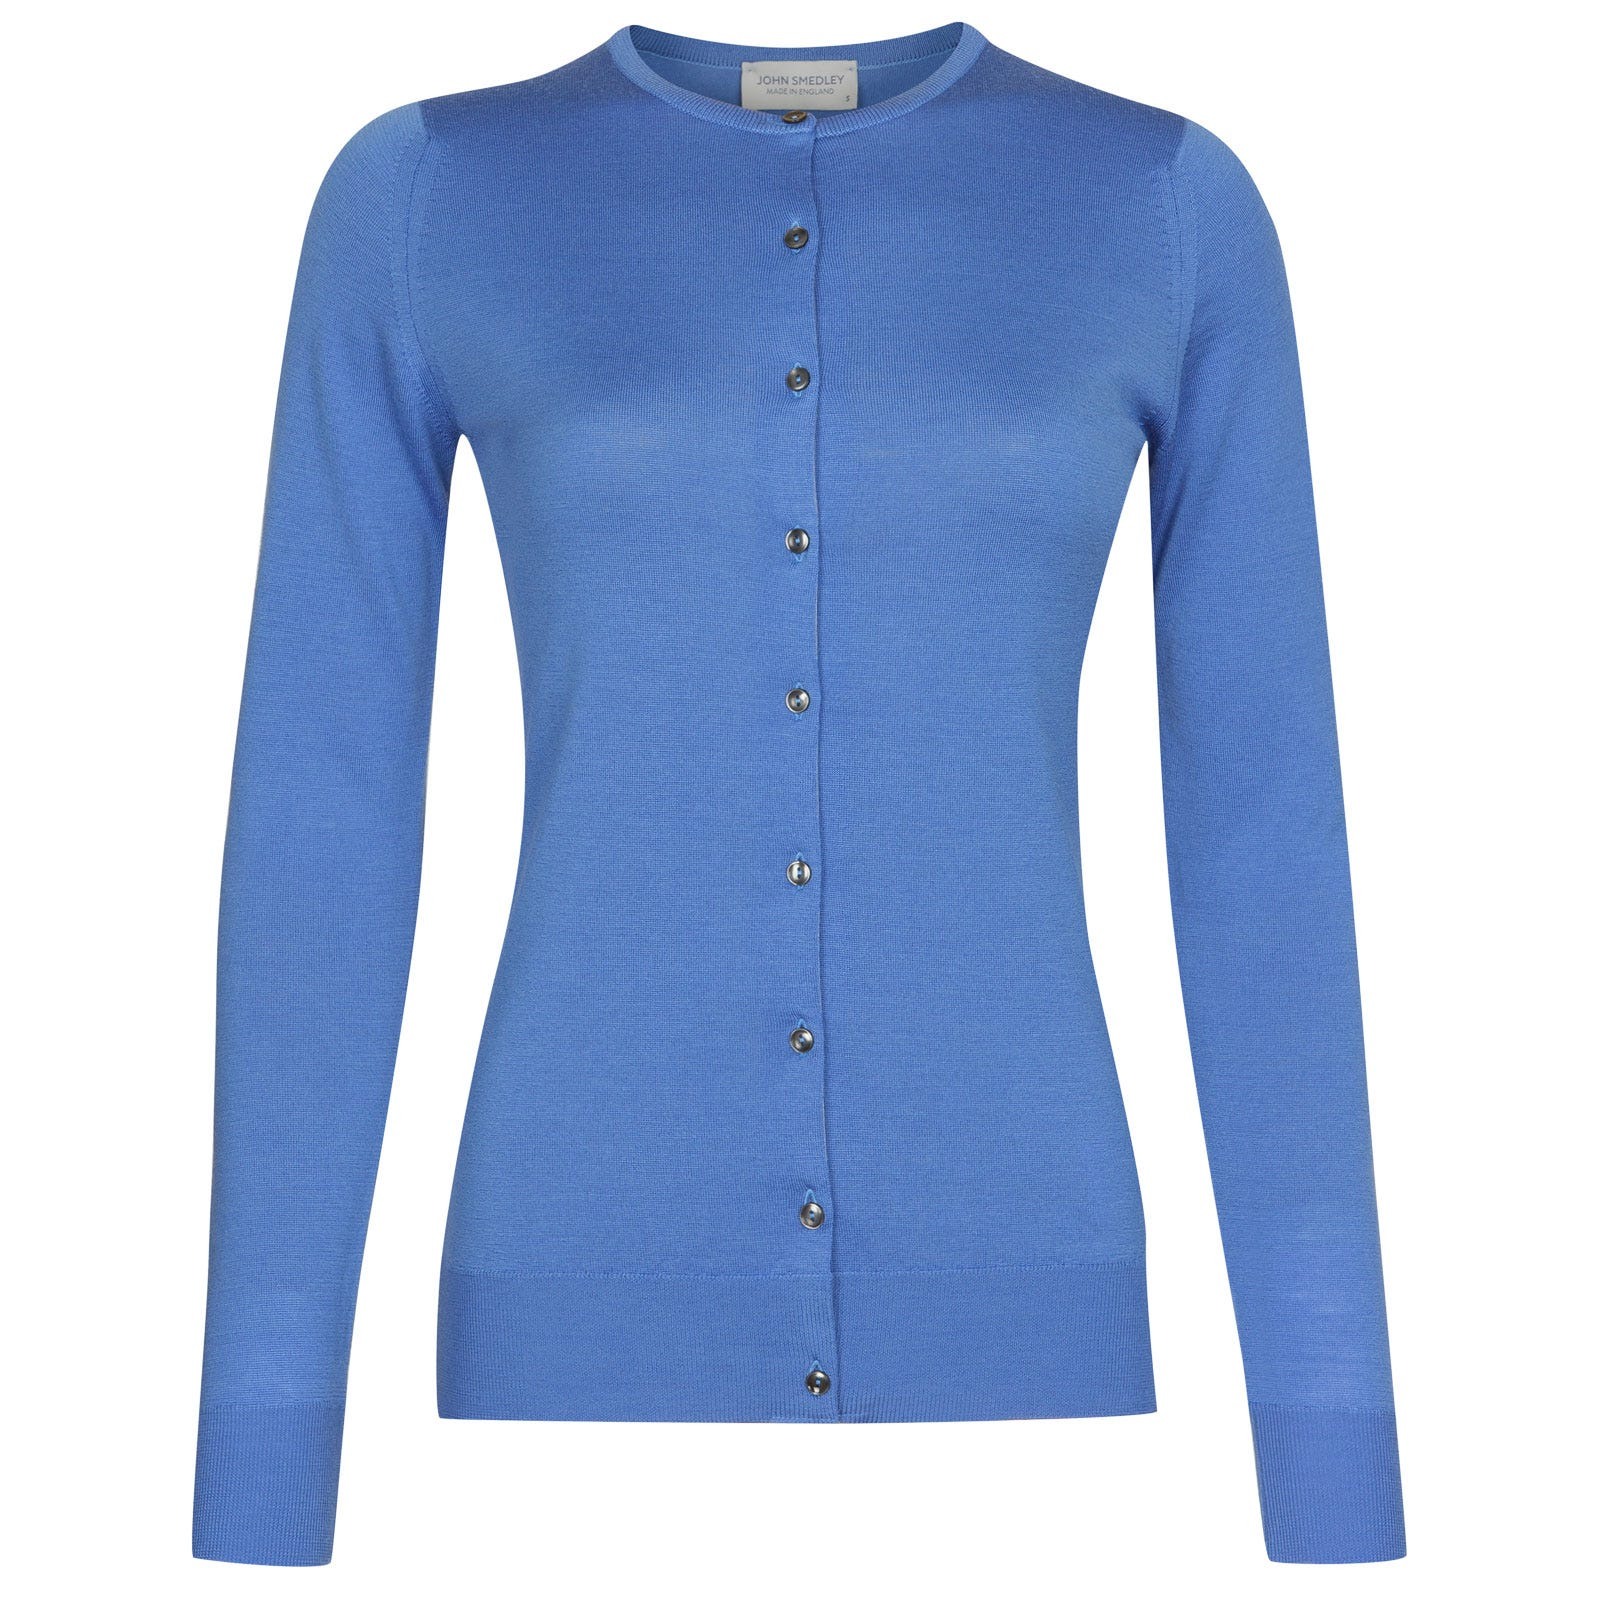 buttercup-Chambray-blue-S